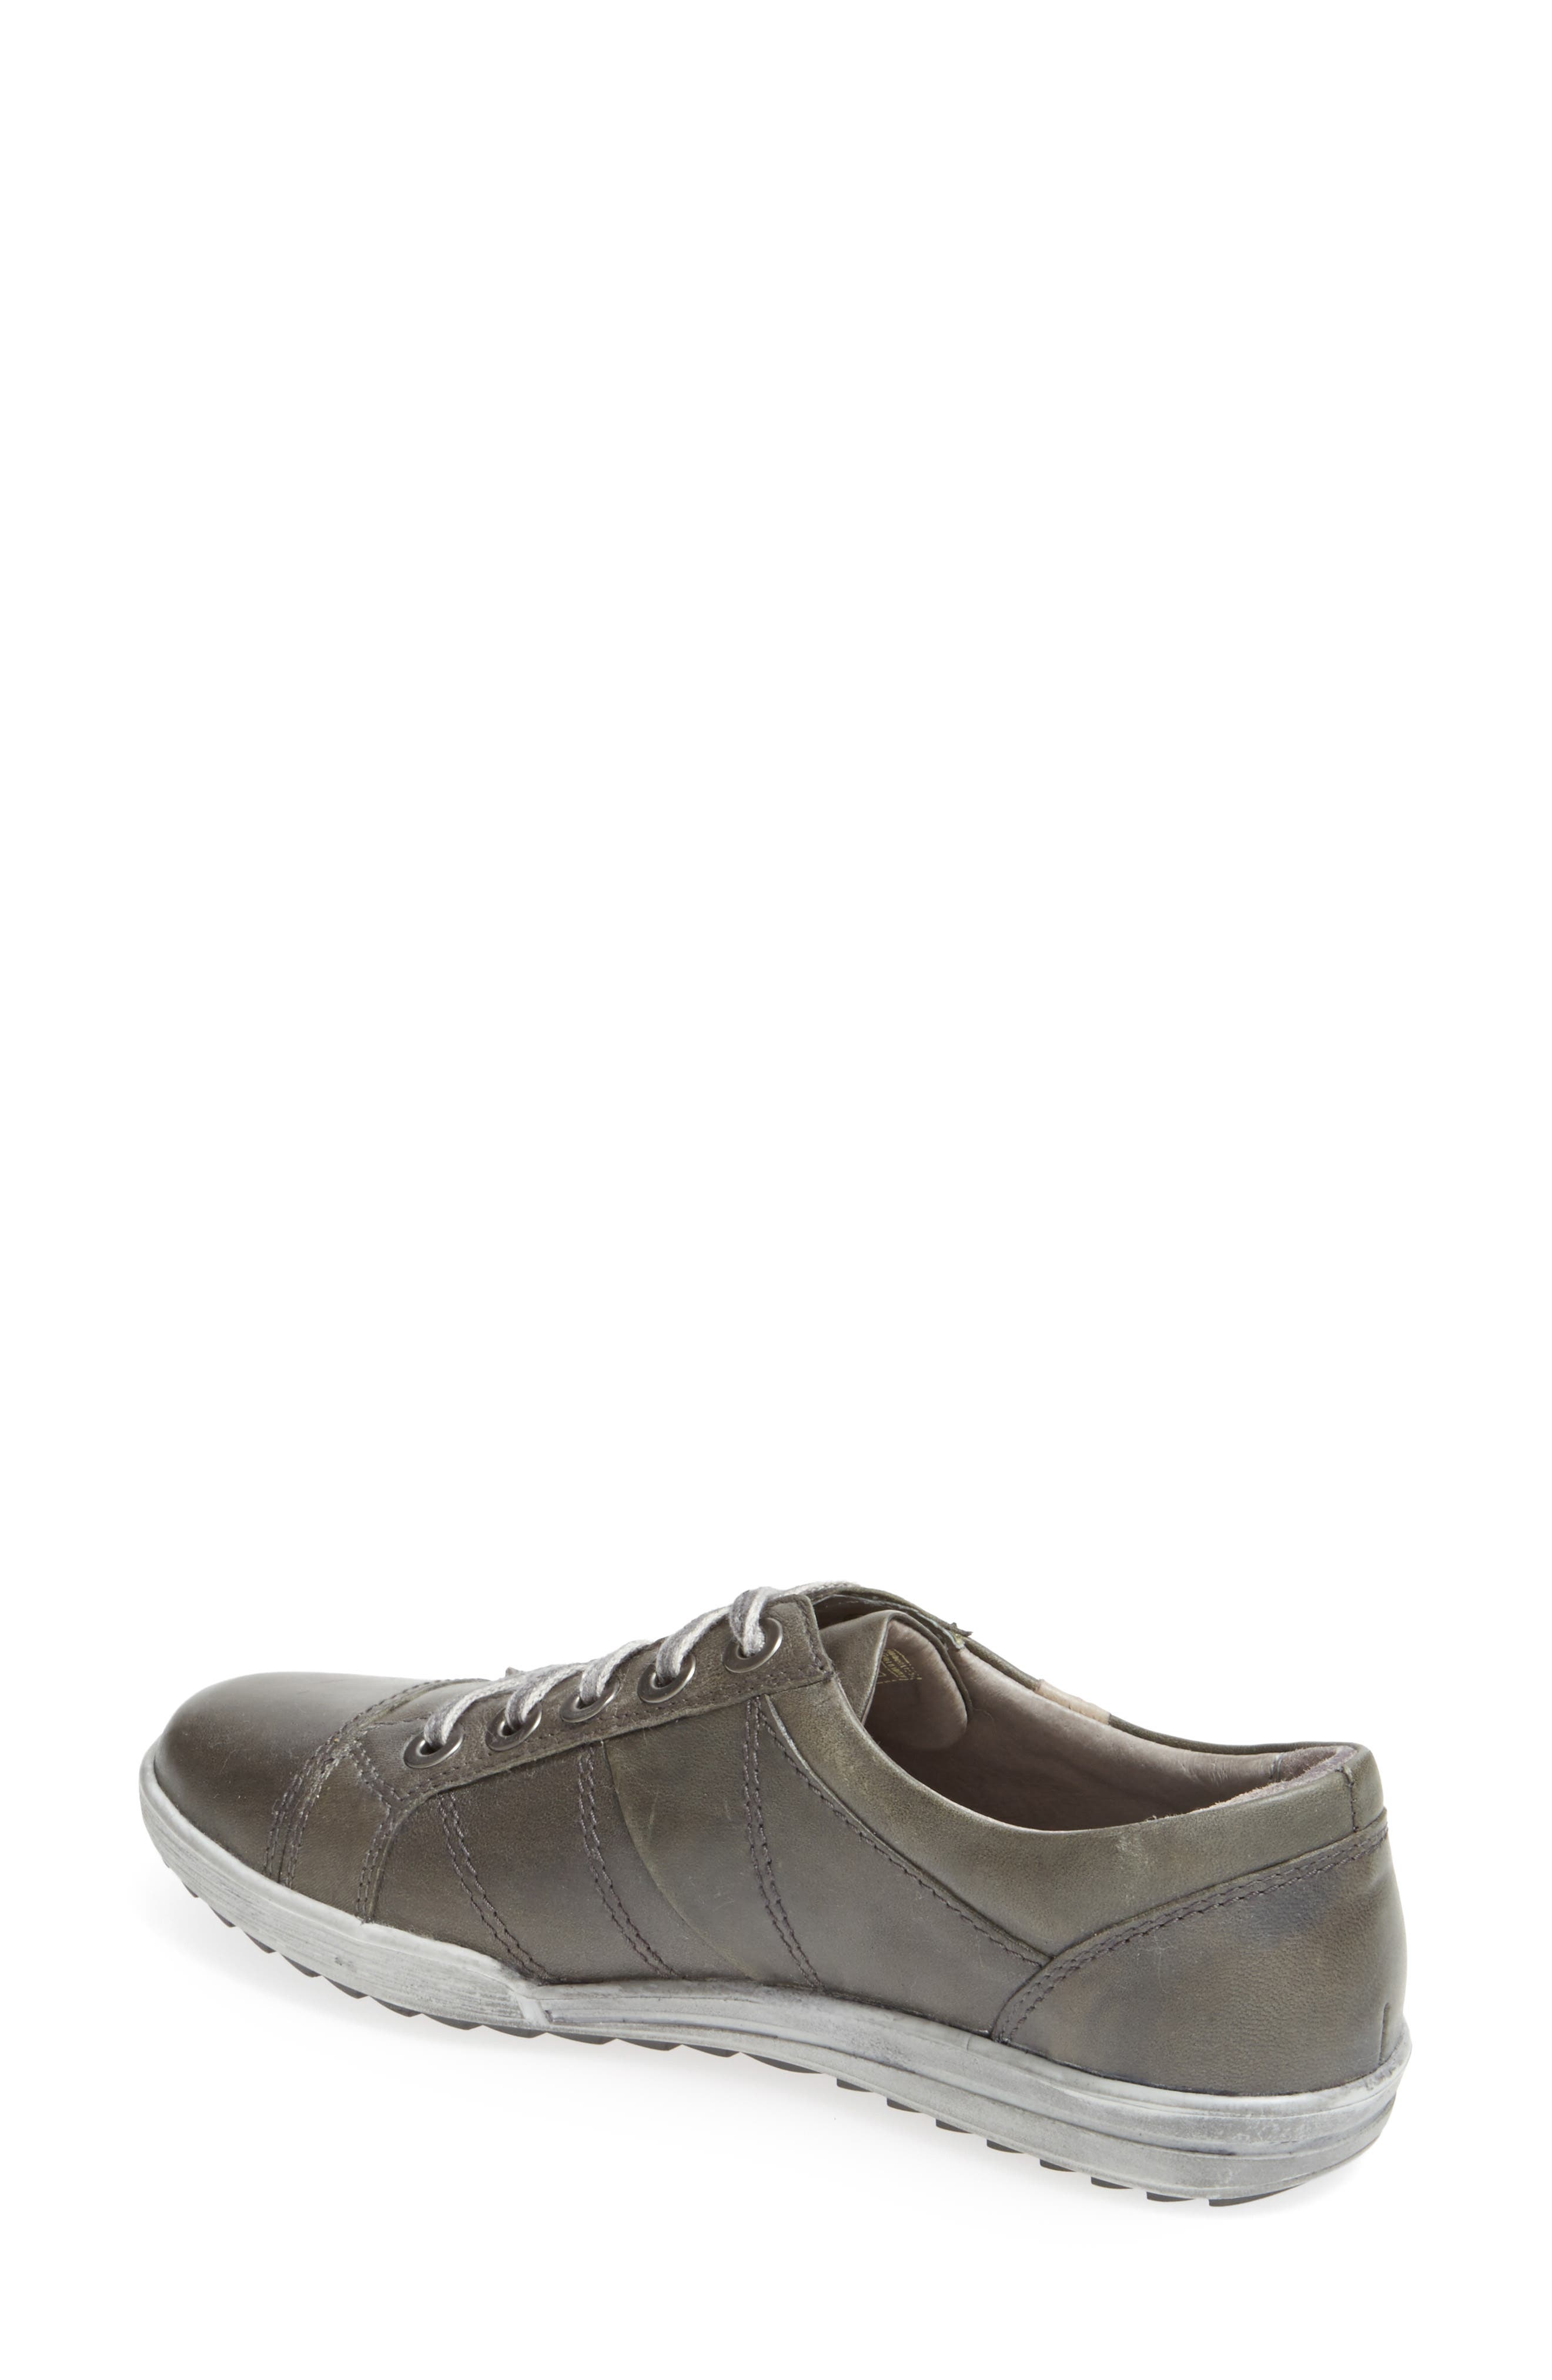 'Dany 05' Leather Sneaker,                             Alternate thumbnail 38, color,